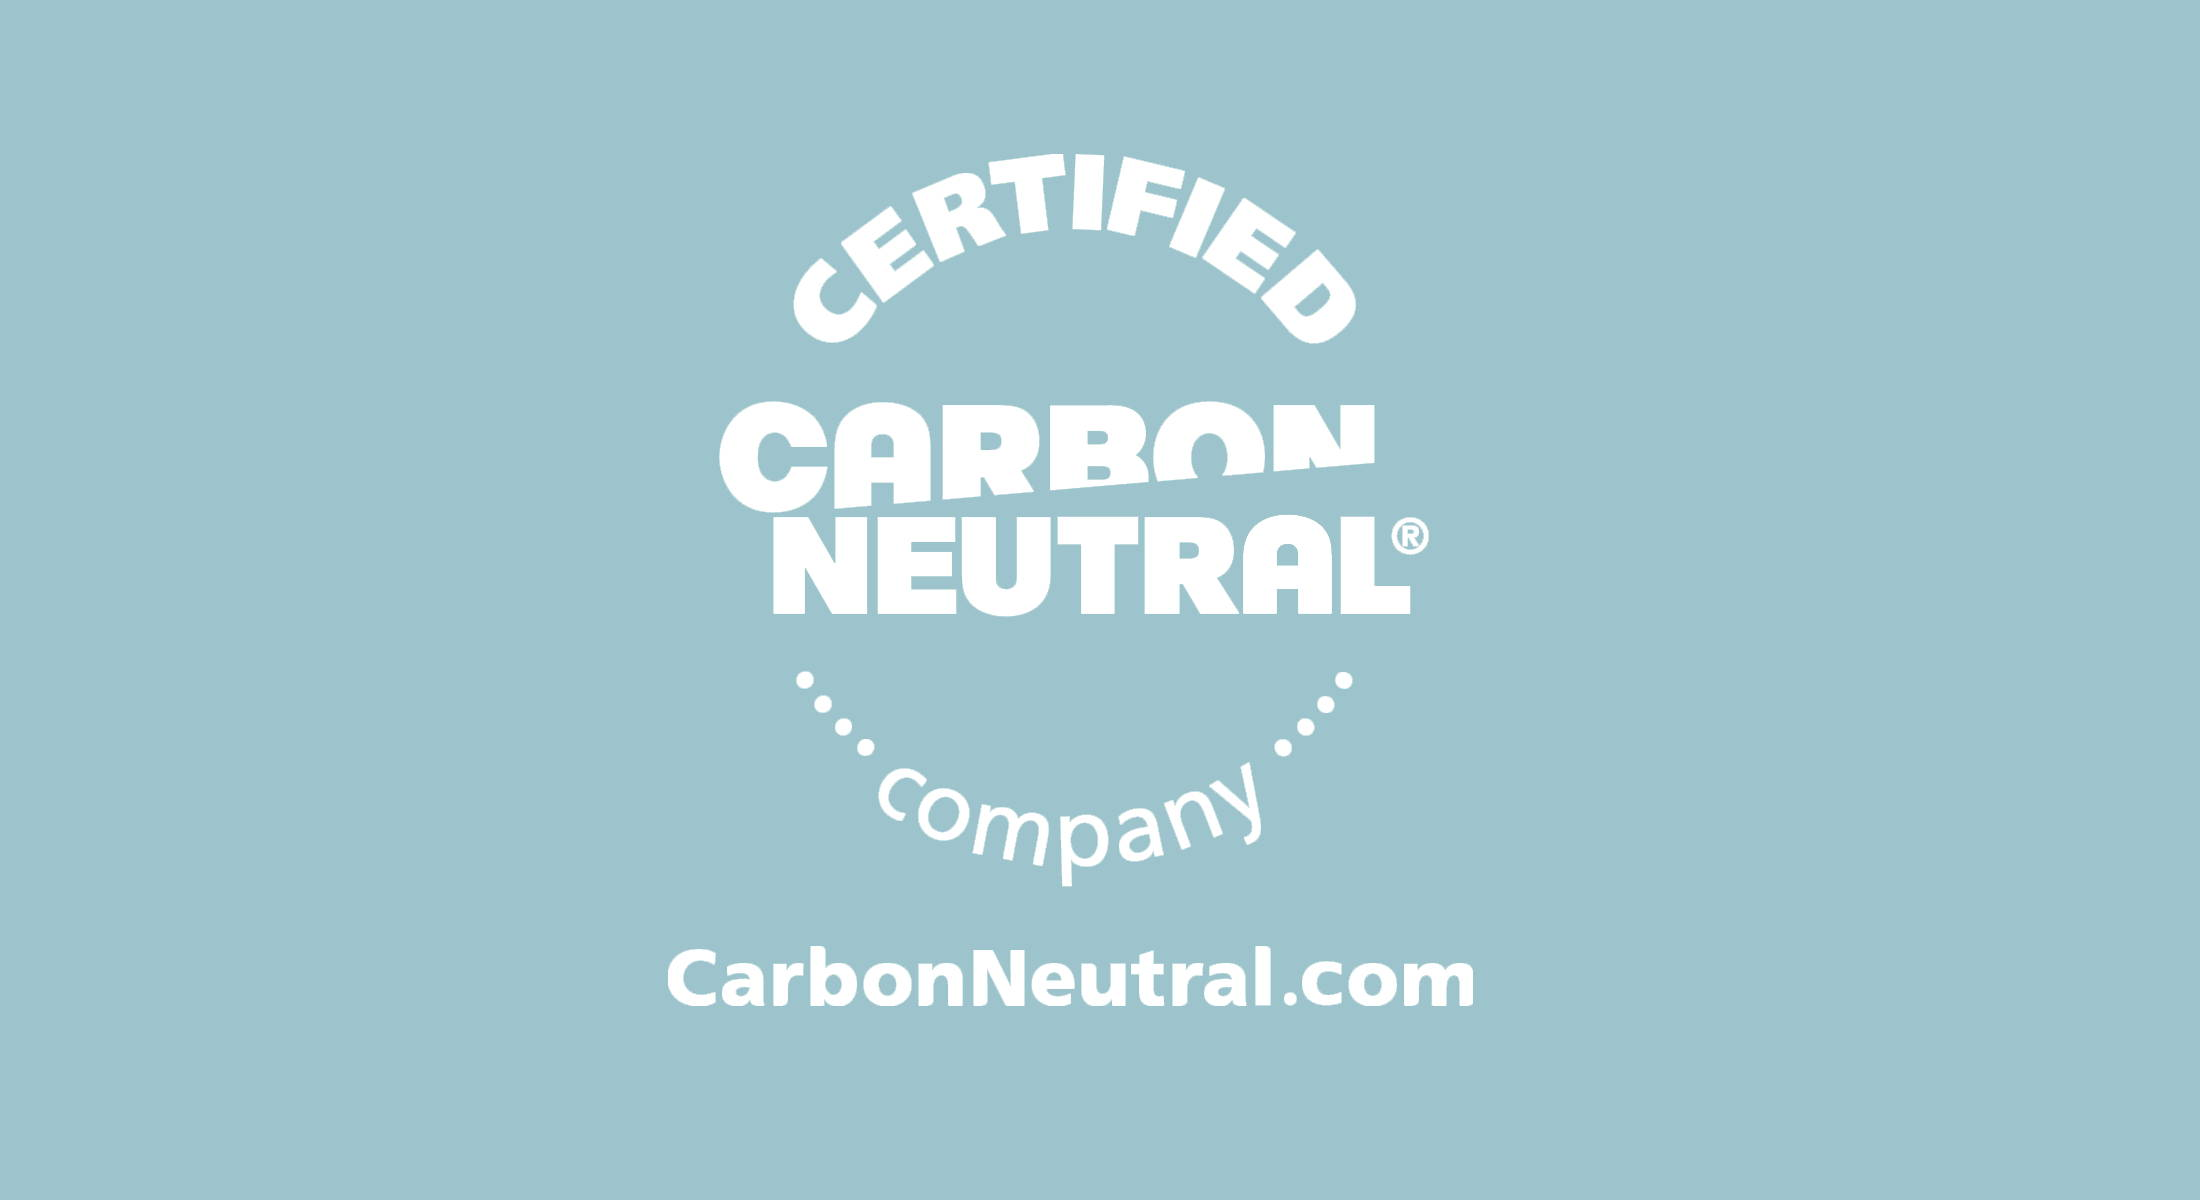 Certified Carbon Neutral Company logo